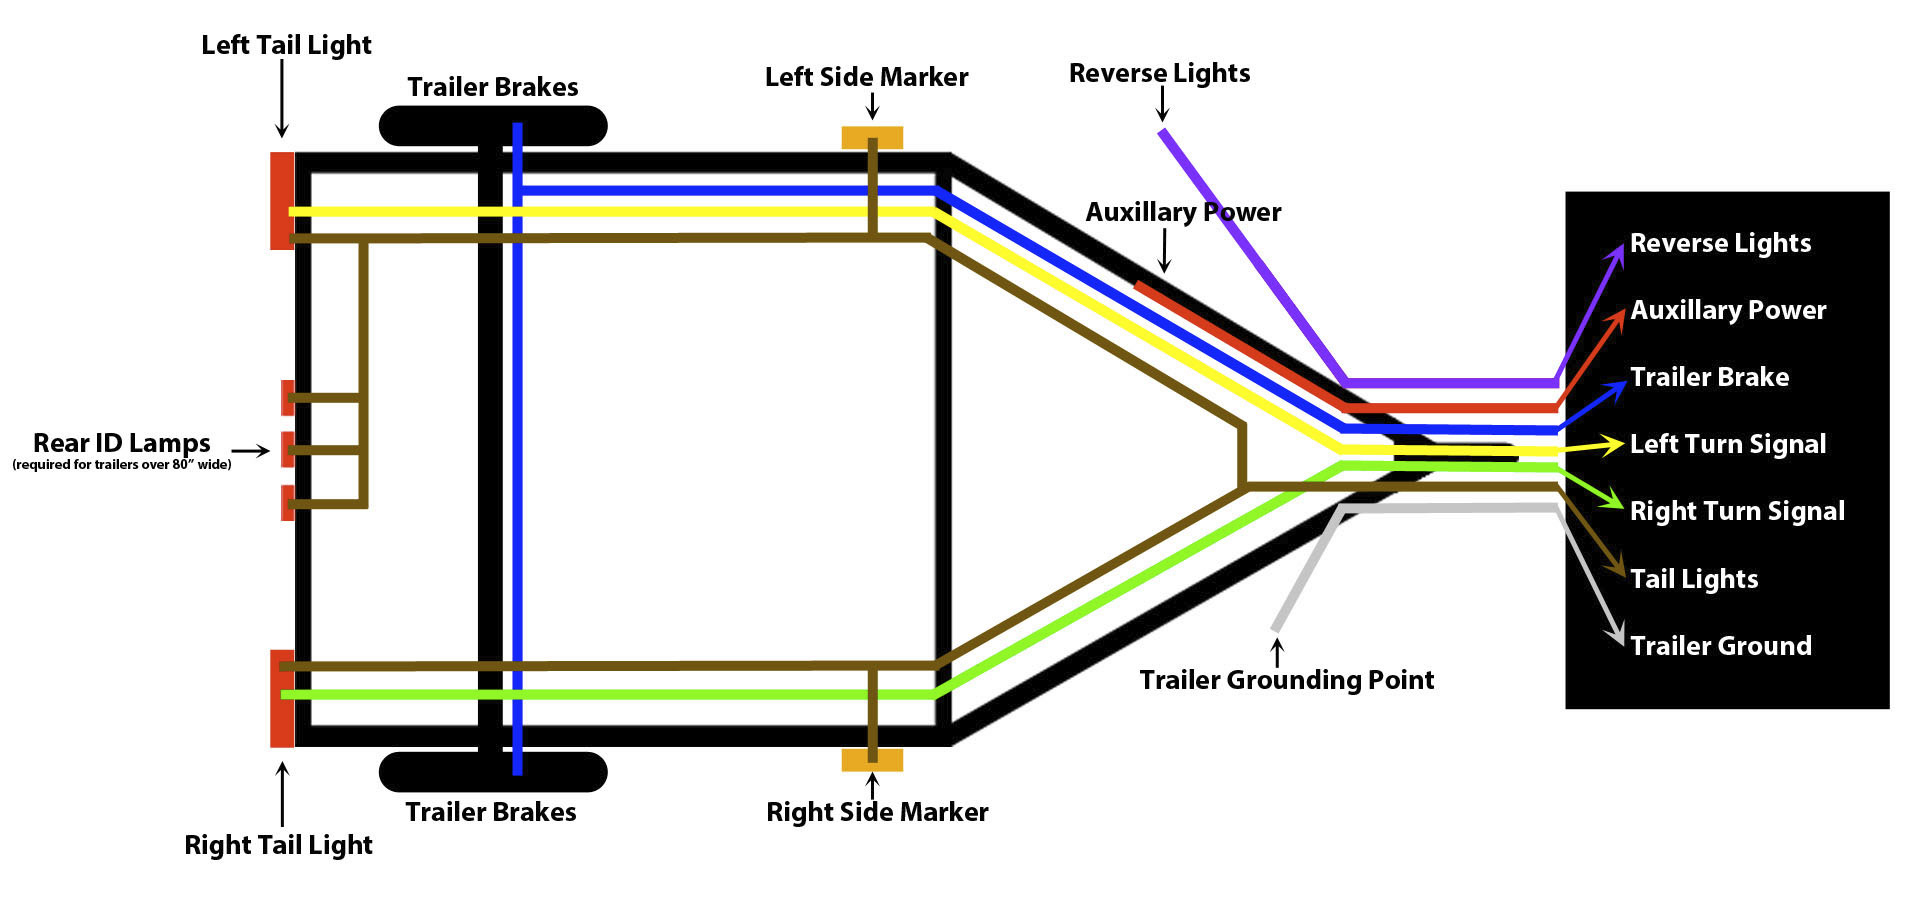 How To Wire Trailer Lights - Trailer Wiring Guide & Videos - Truck To Trailer Wiring Diagram